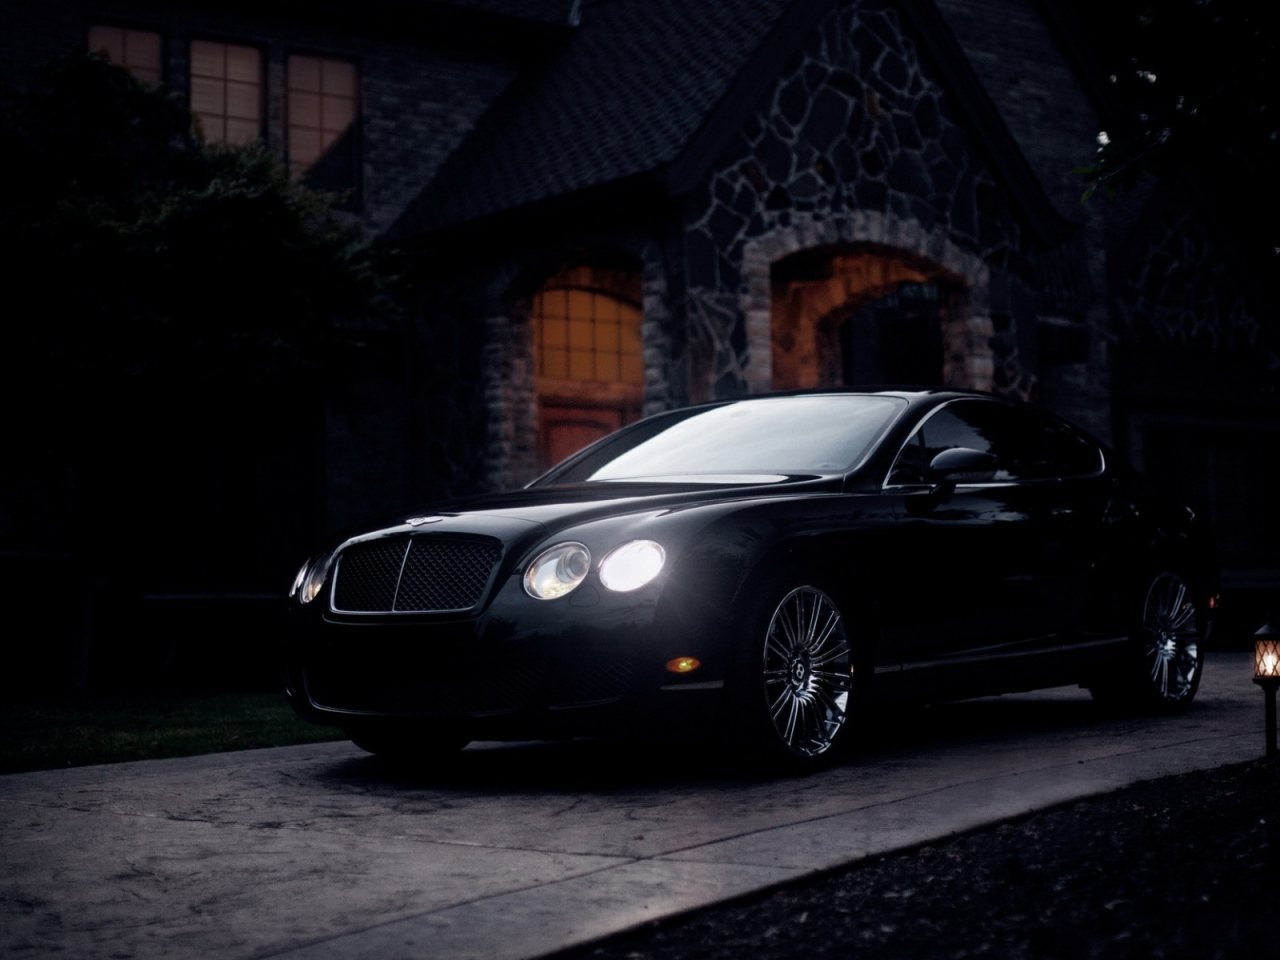 Black Bentley Continental GT for 1280 x 960 resolution